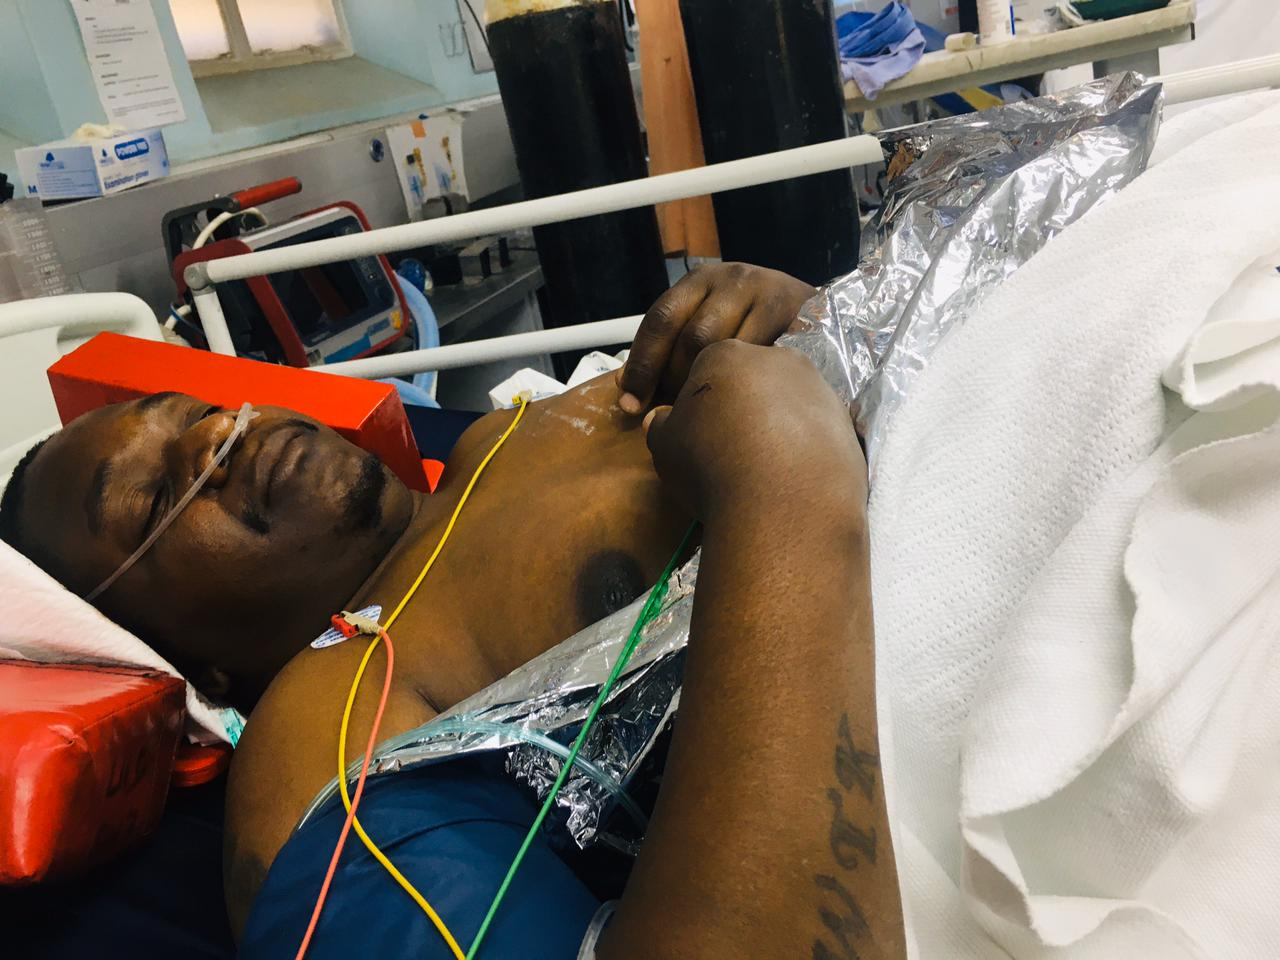 Family man left paralysed after armed robbery gone wrong